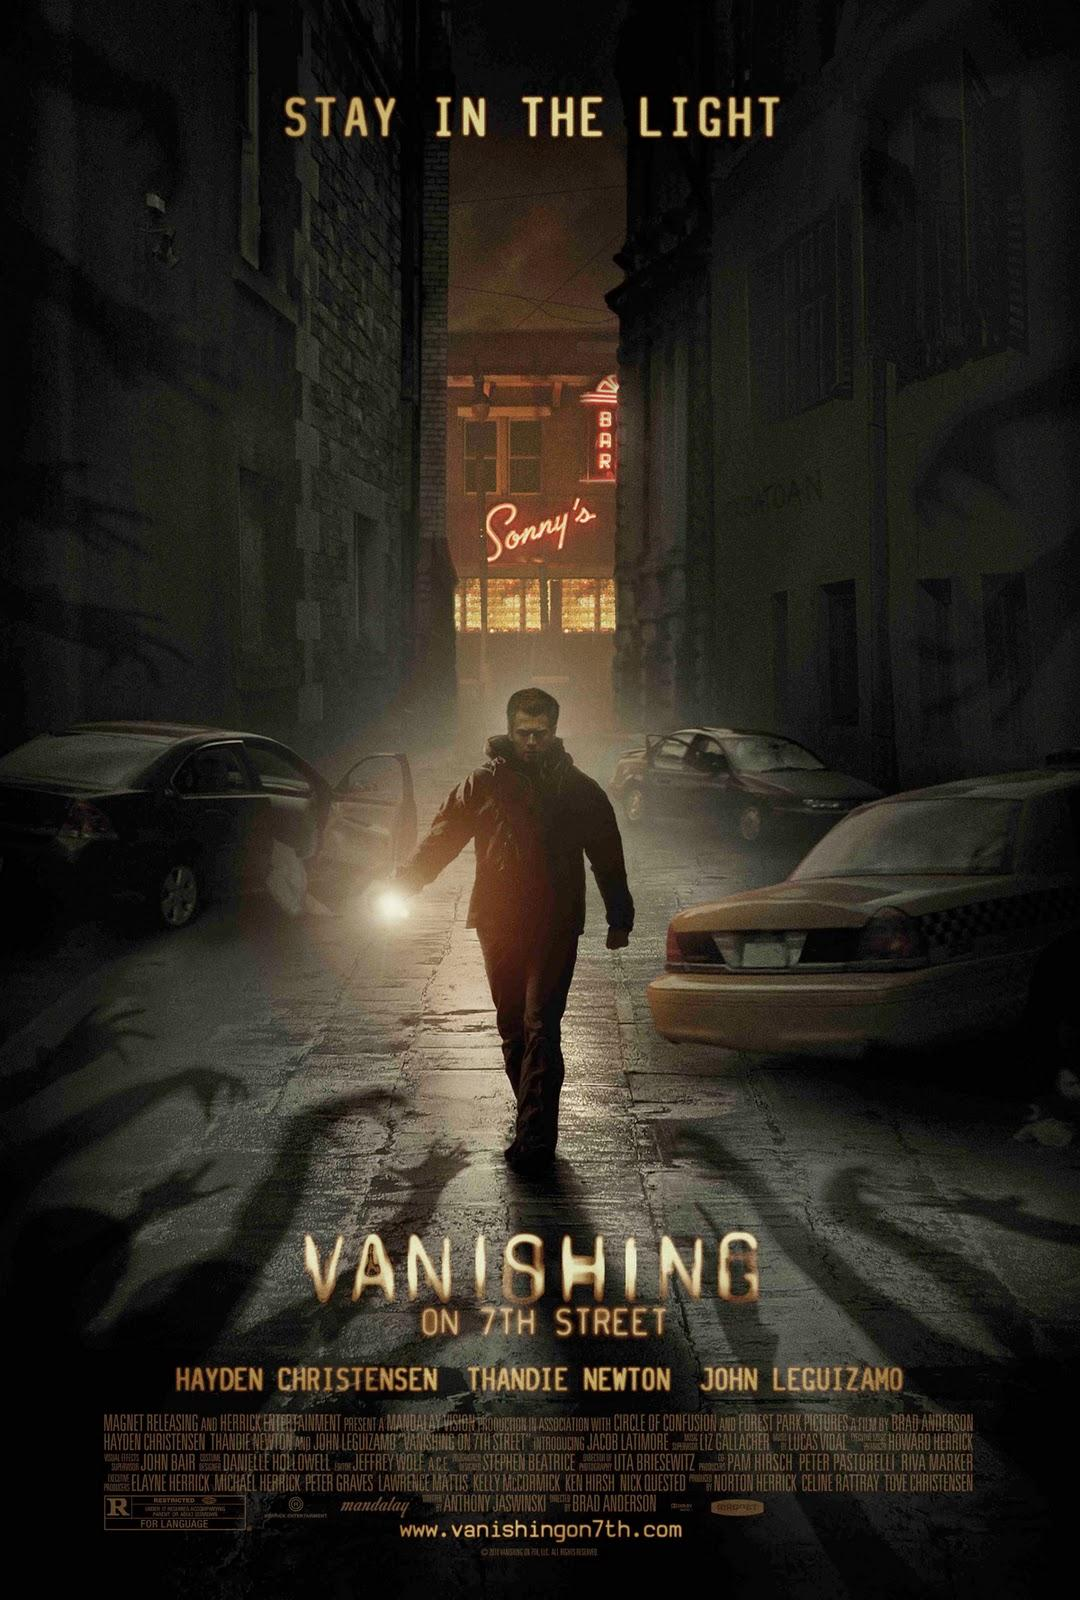 VanishingOn7thStreet.jpeg (1080×1600)